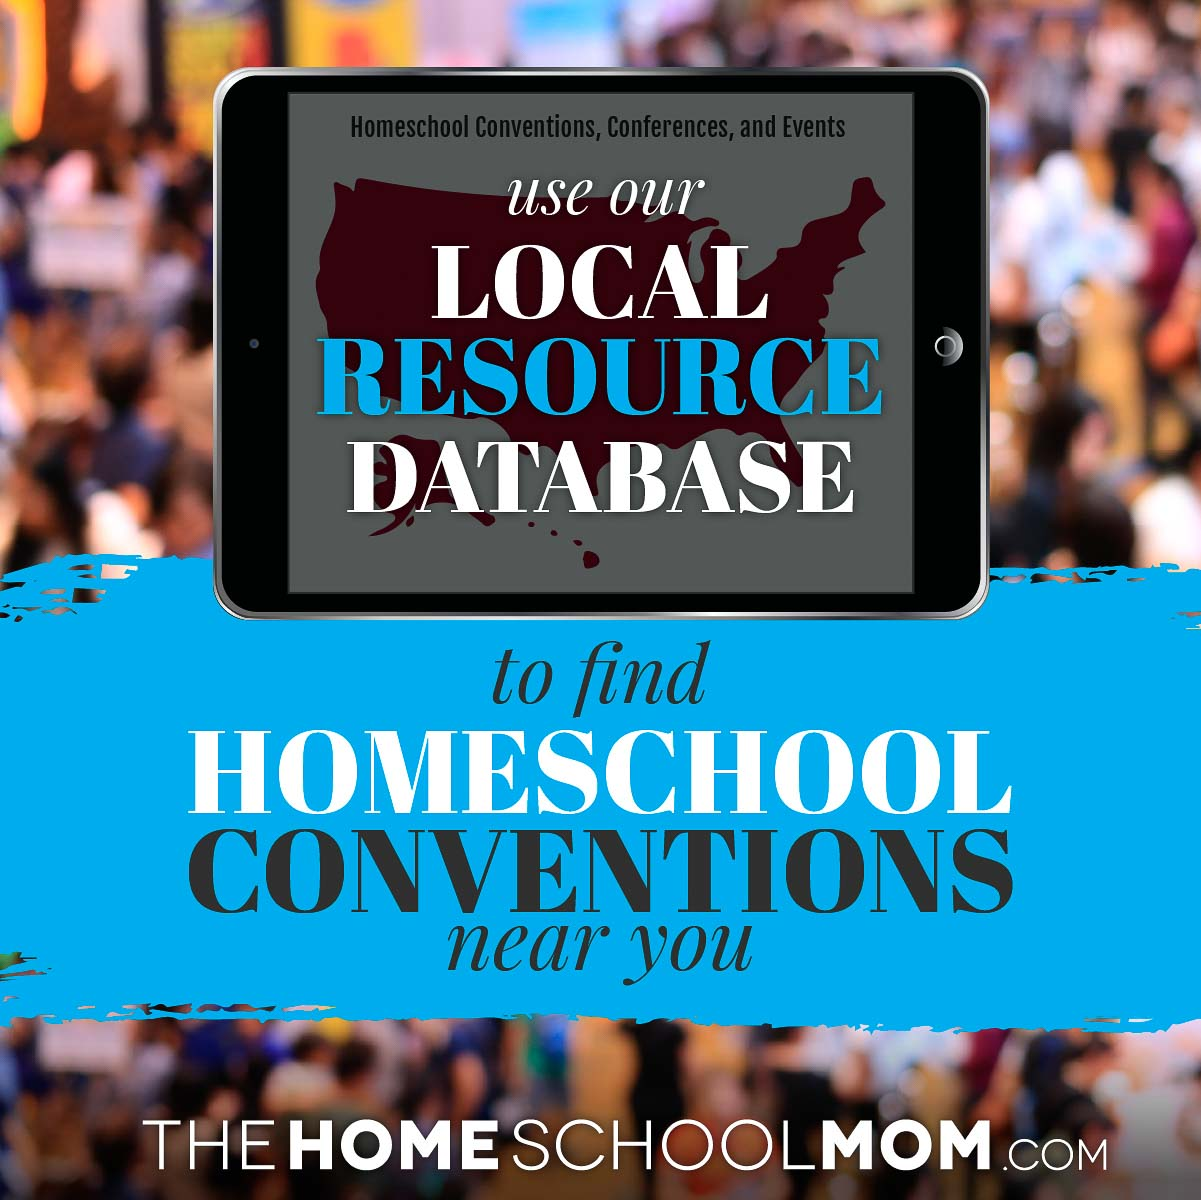 Use our local resource database to find homeschool conventions near you